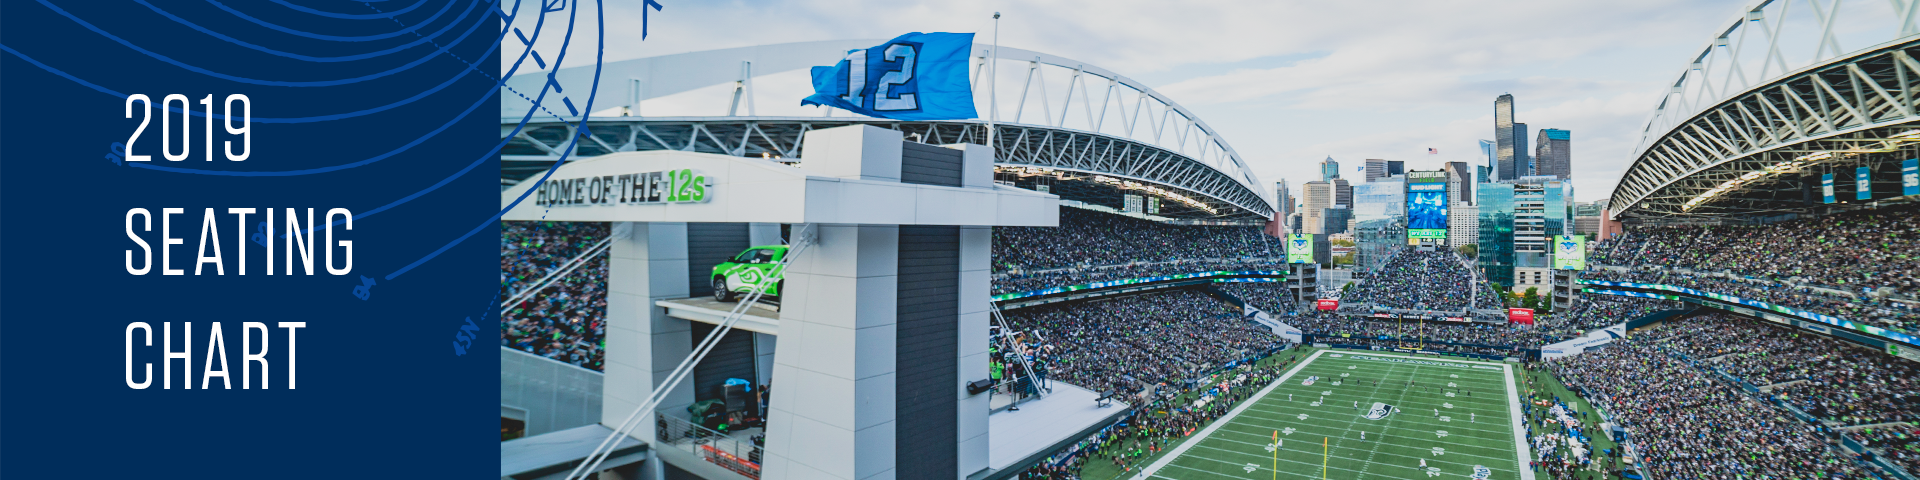 Seattle Seahawks Seating Chart at CenturyLink Field